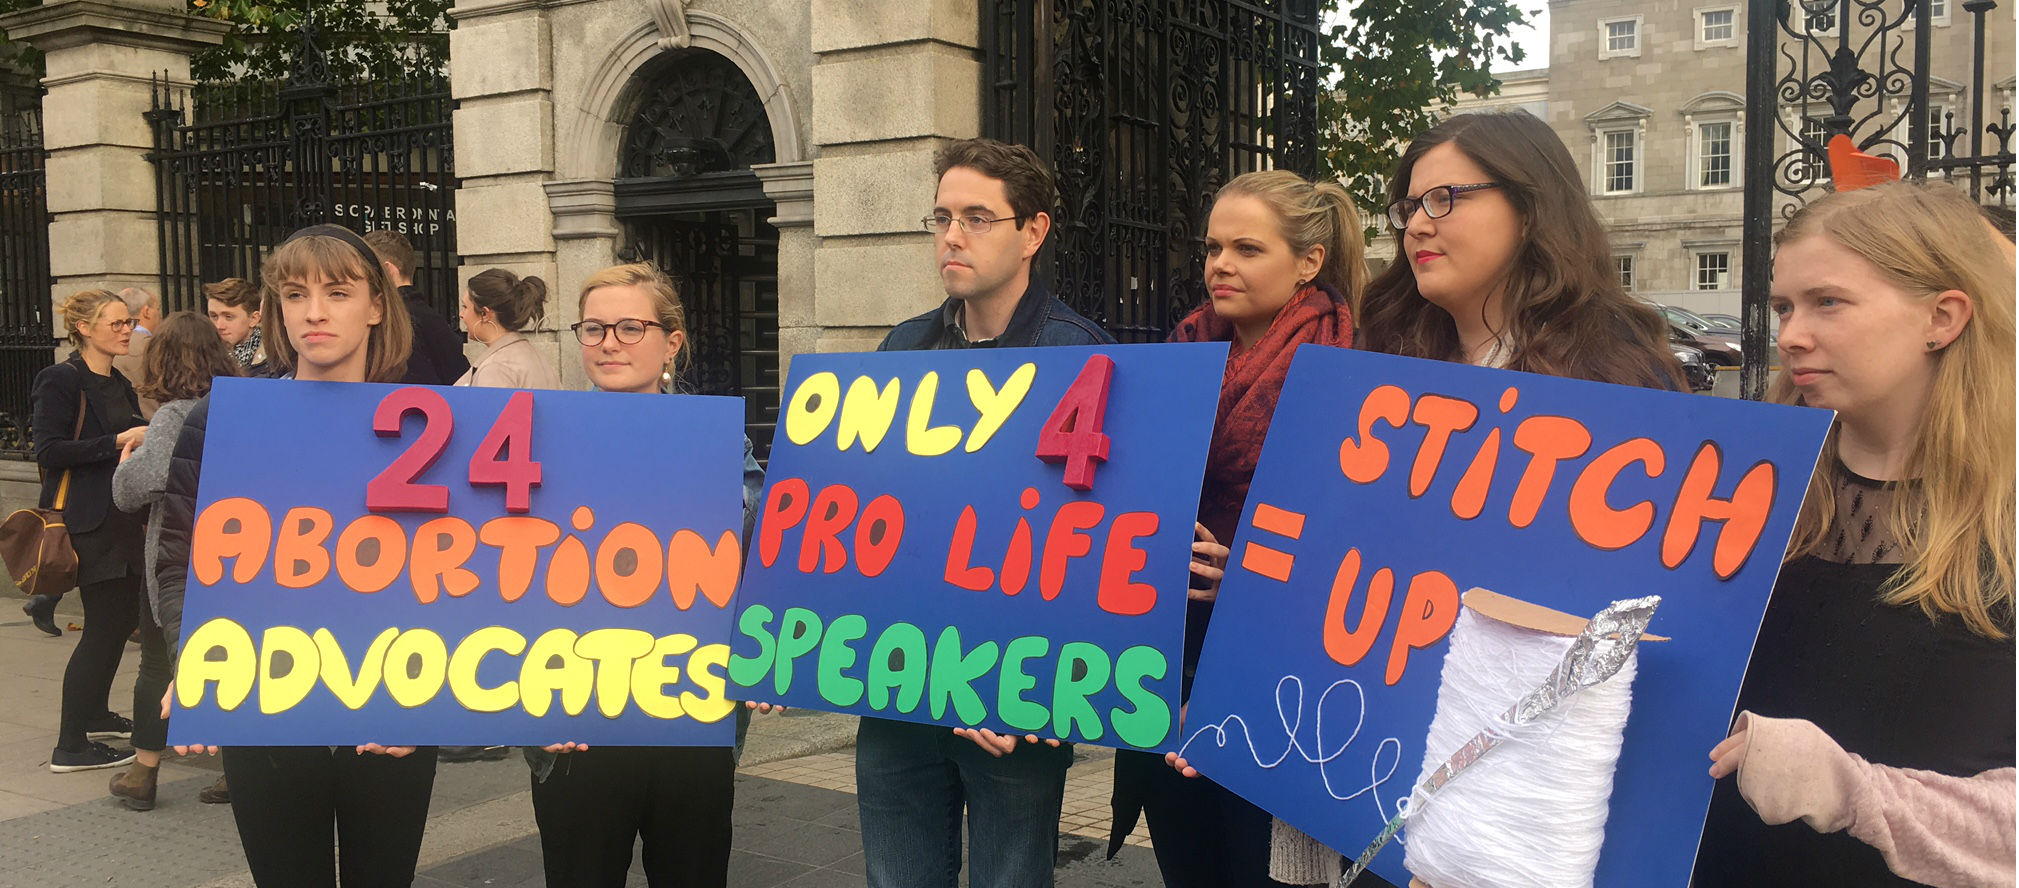 A Pro-Life Protest Takes Place In Dublin